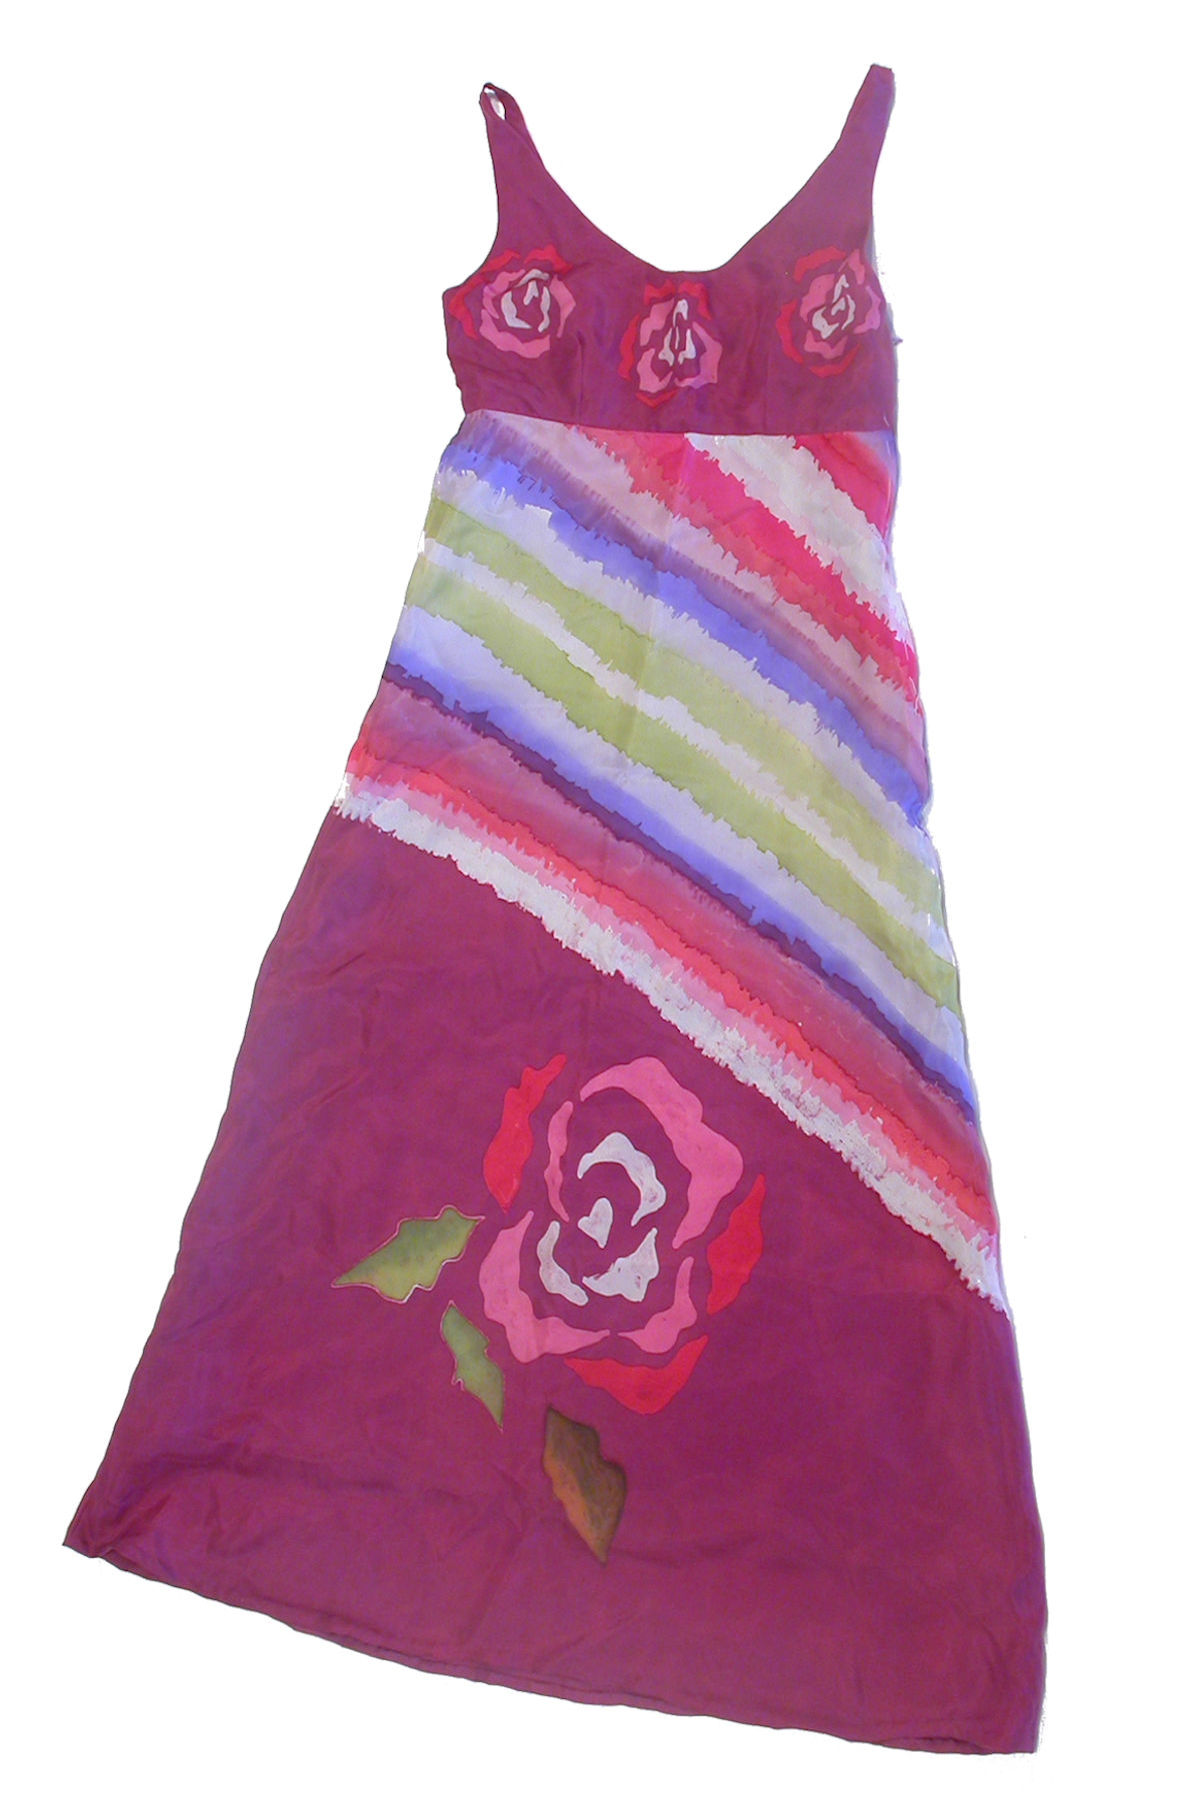 'Roses' – Hand-Painted Silk Dress